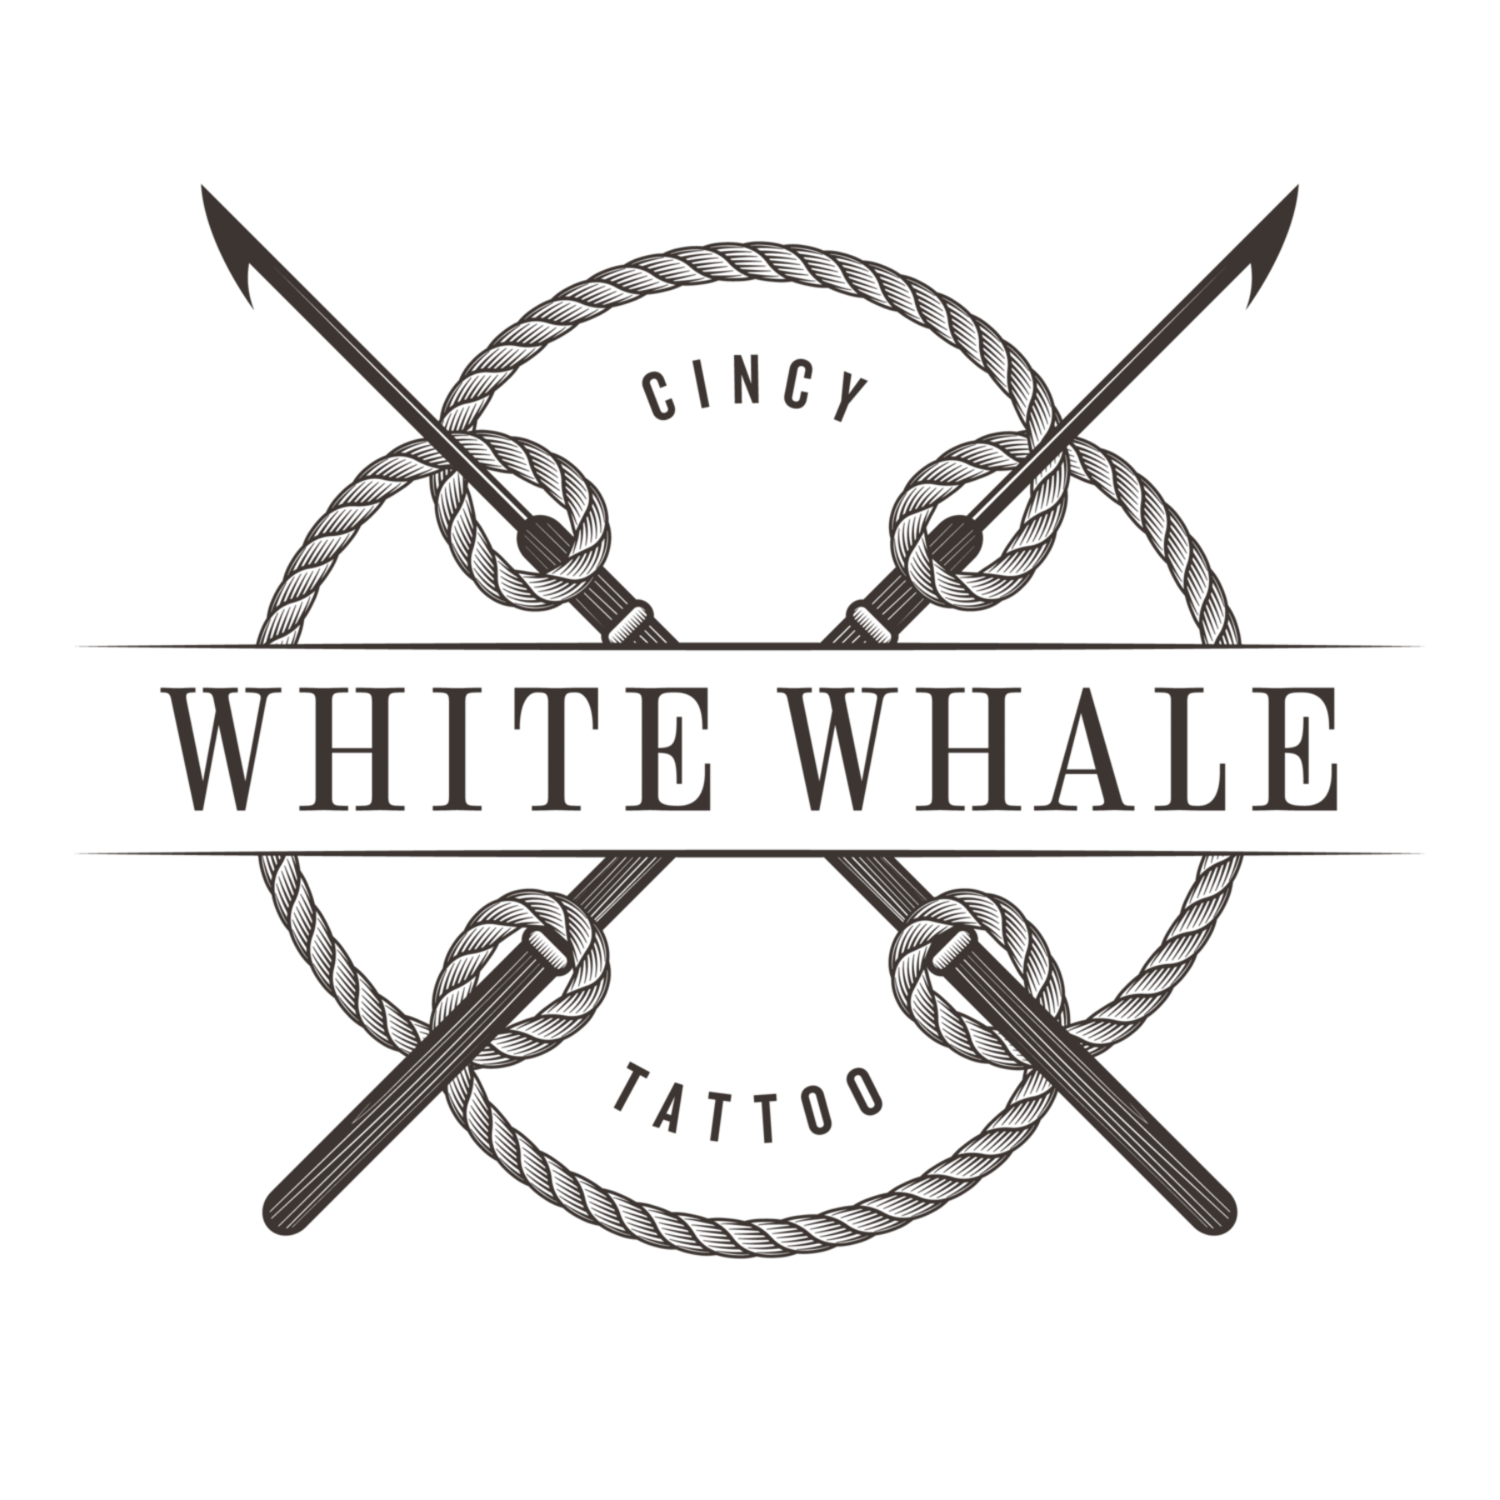 White Whale Tattoo